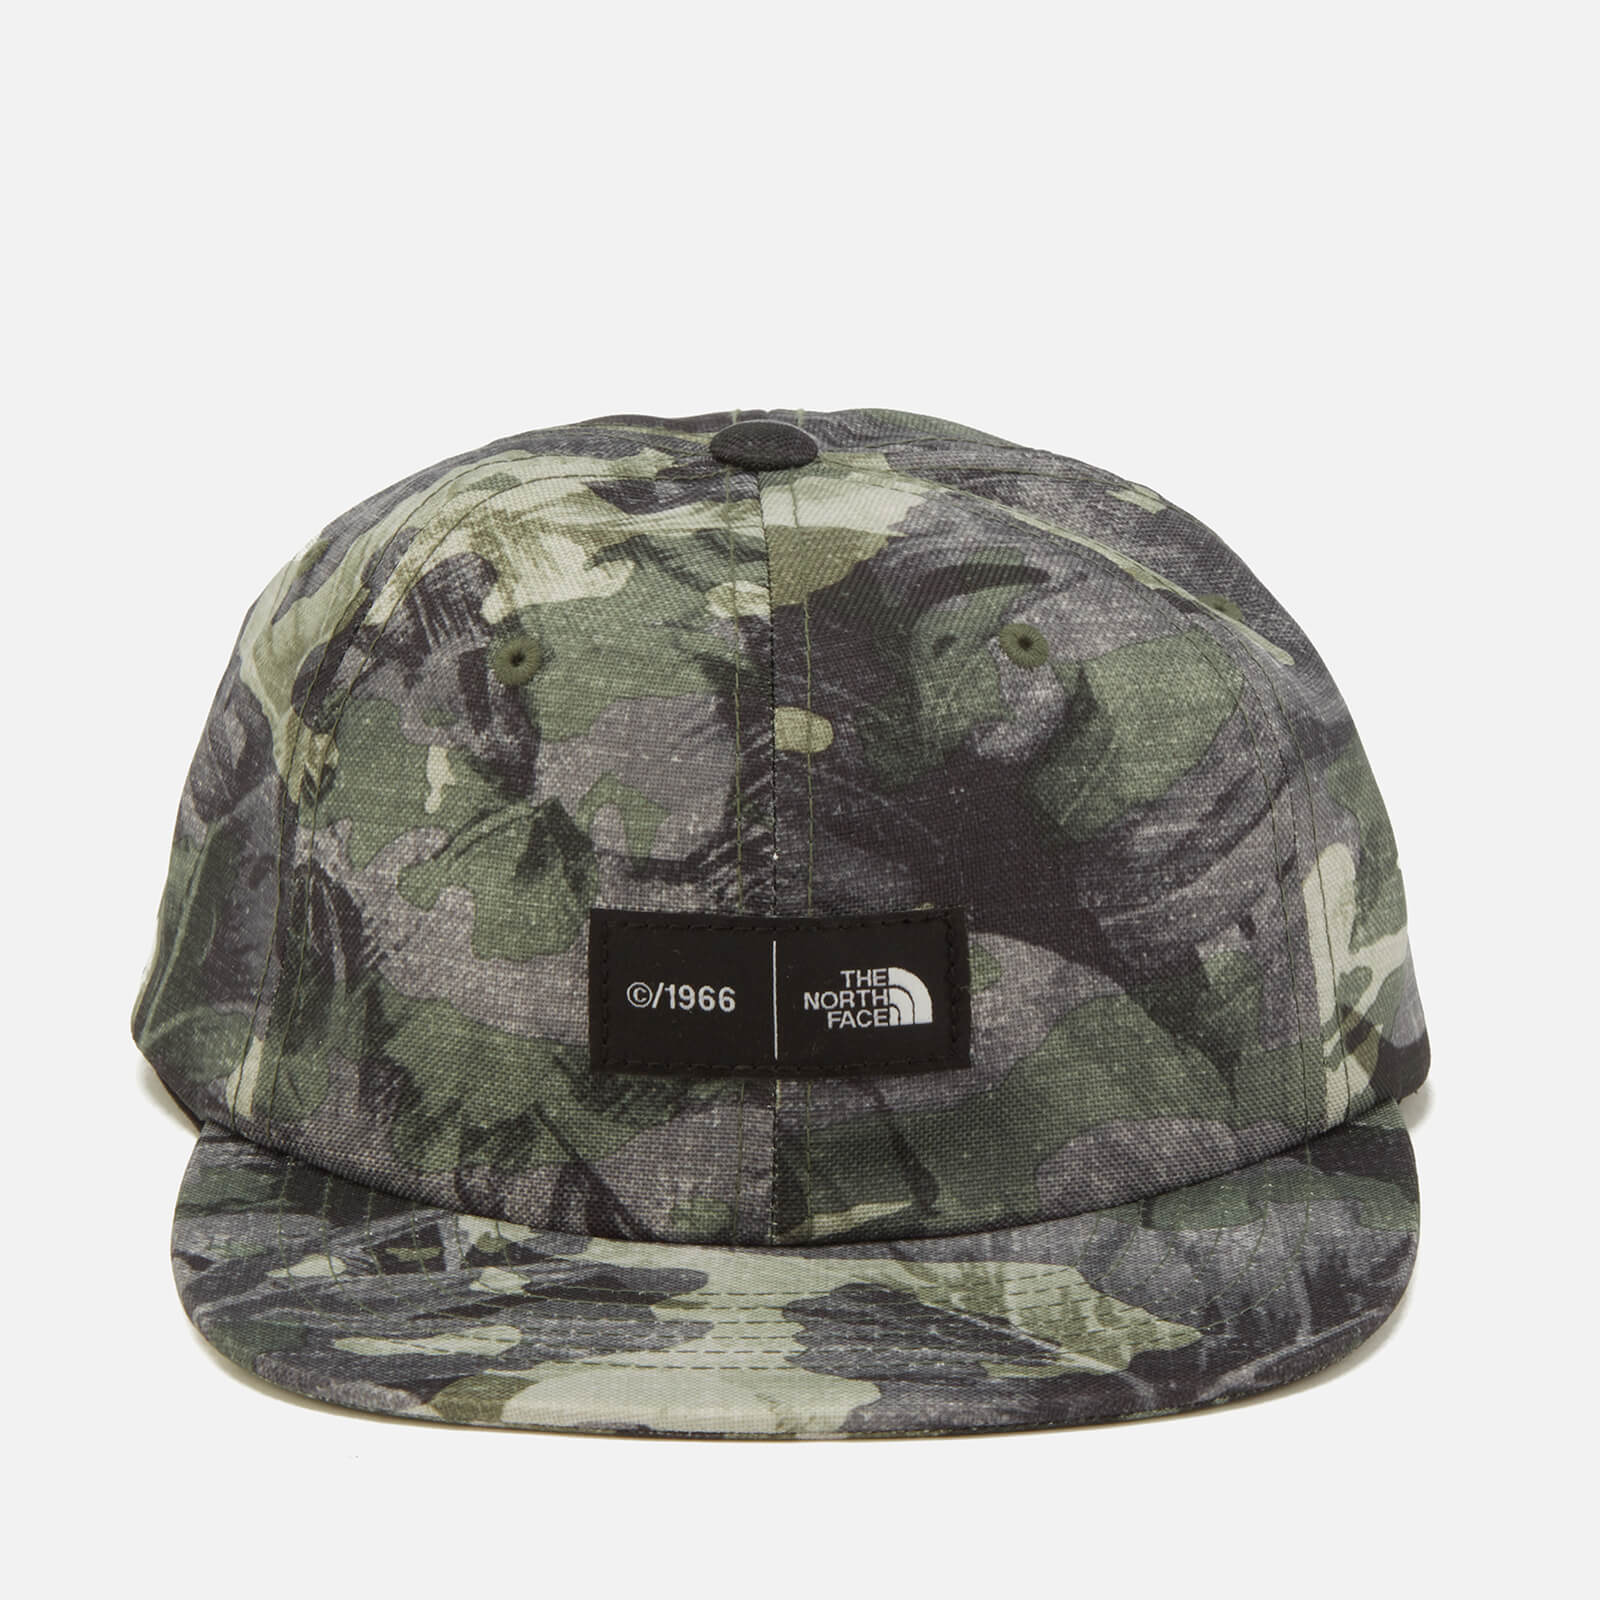 ddb5ee8bbebd4 The North Face Men s Pack Unstructured Hat - English Green Tropical Camo  Mens Accessories